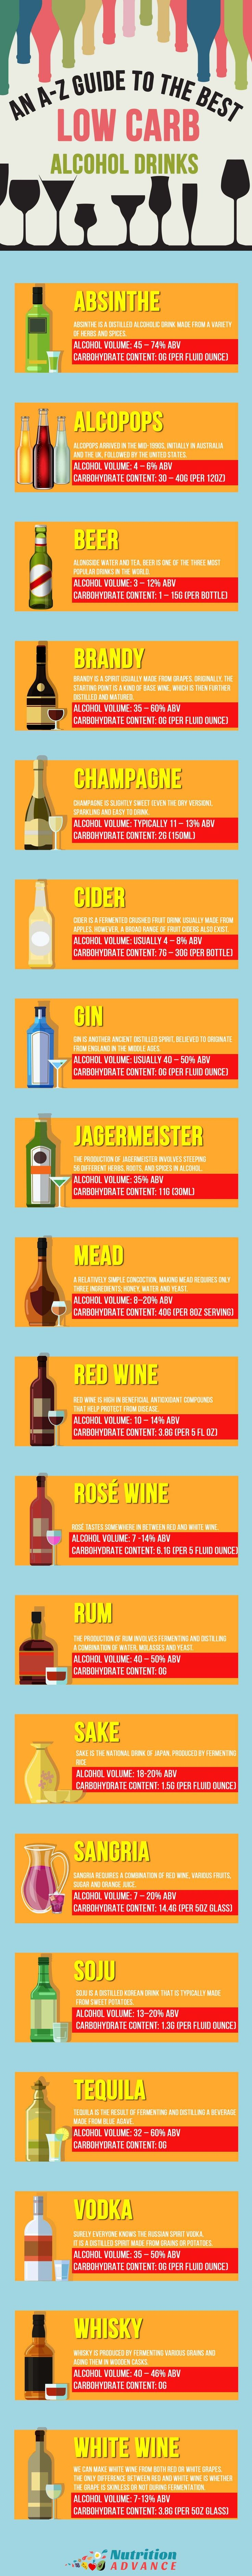 The 25 best most popular alcoholic drinks ideas on pinterest low carb alcohol here are 20 popular alcoholic drinks with their carbohydrate content and alcohol volume which ones are most suitable for lchf and keto gamestrikefo Gallery